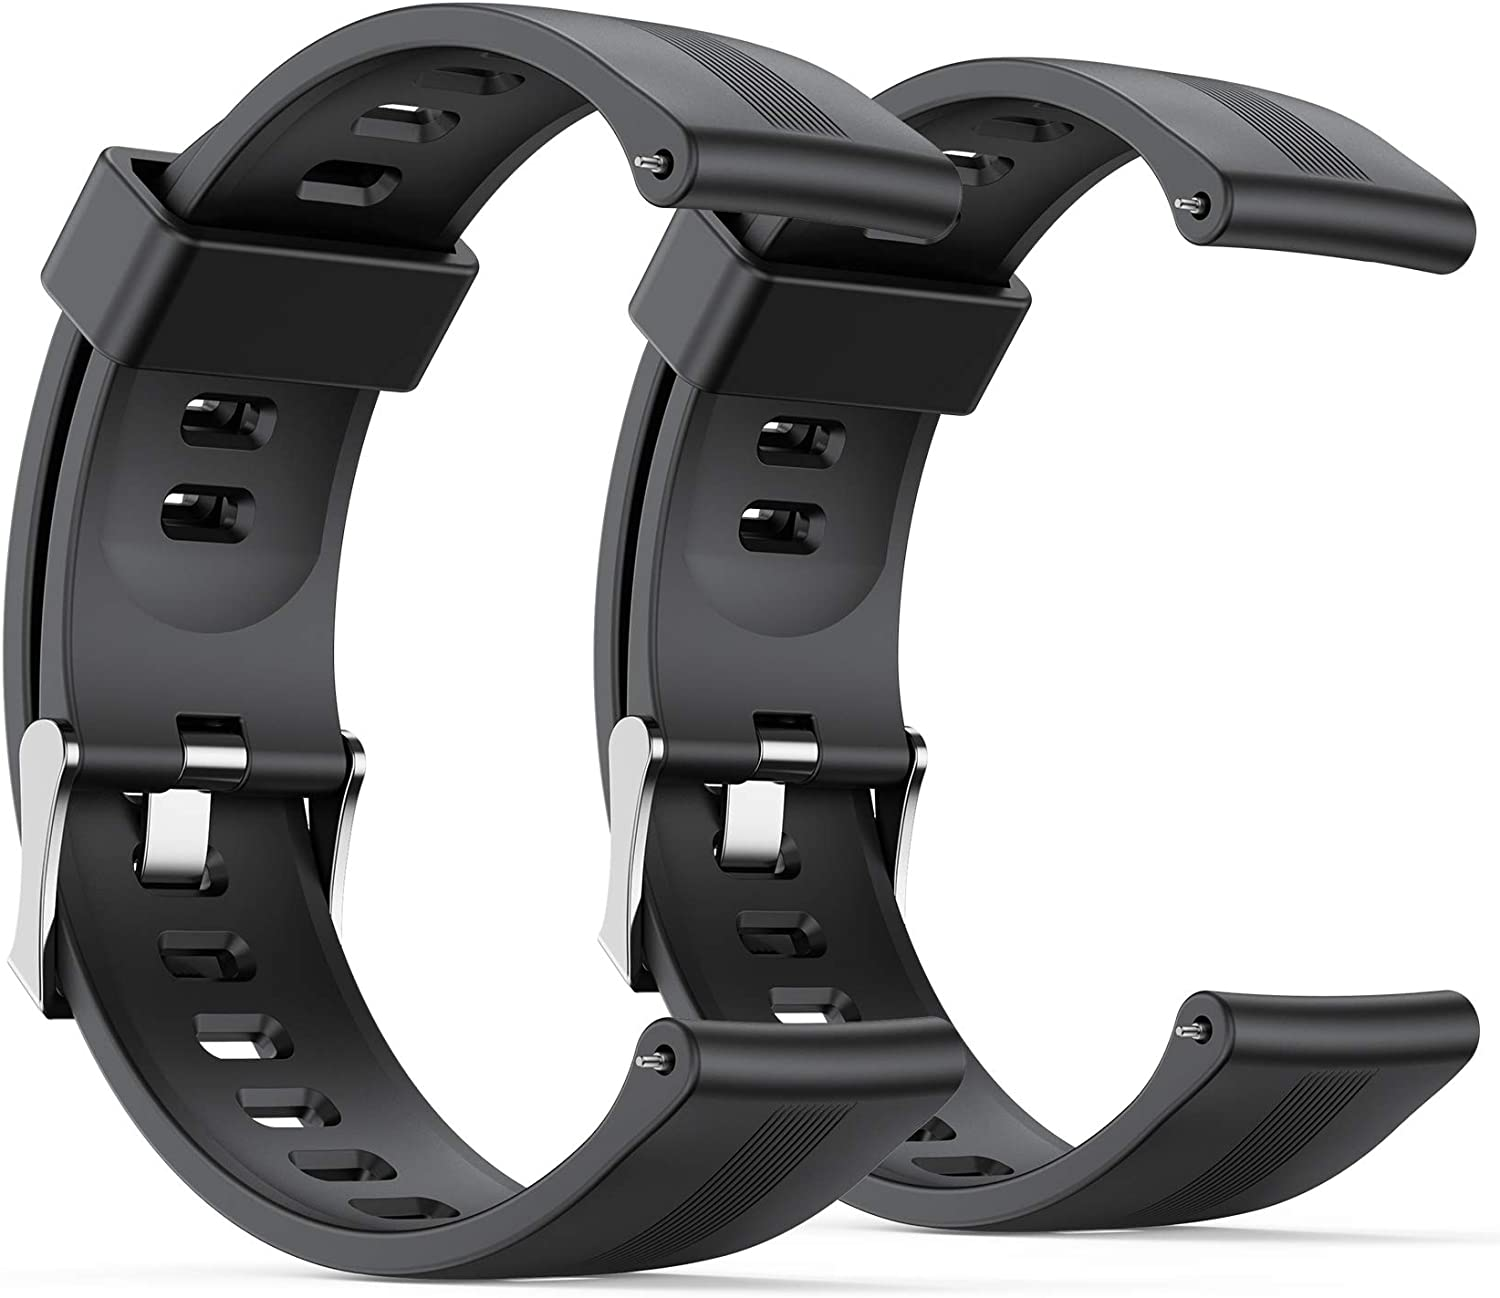 AGPTEK Smart Watch Ranking TOP4 Bands Soft Strap 22mm LW11 Special sale item for 2 Replacement